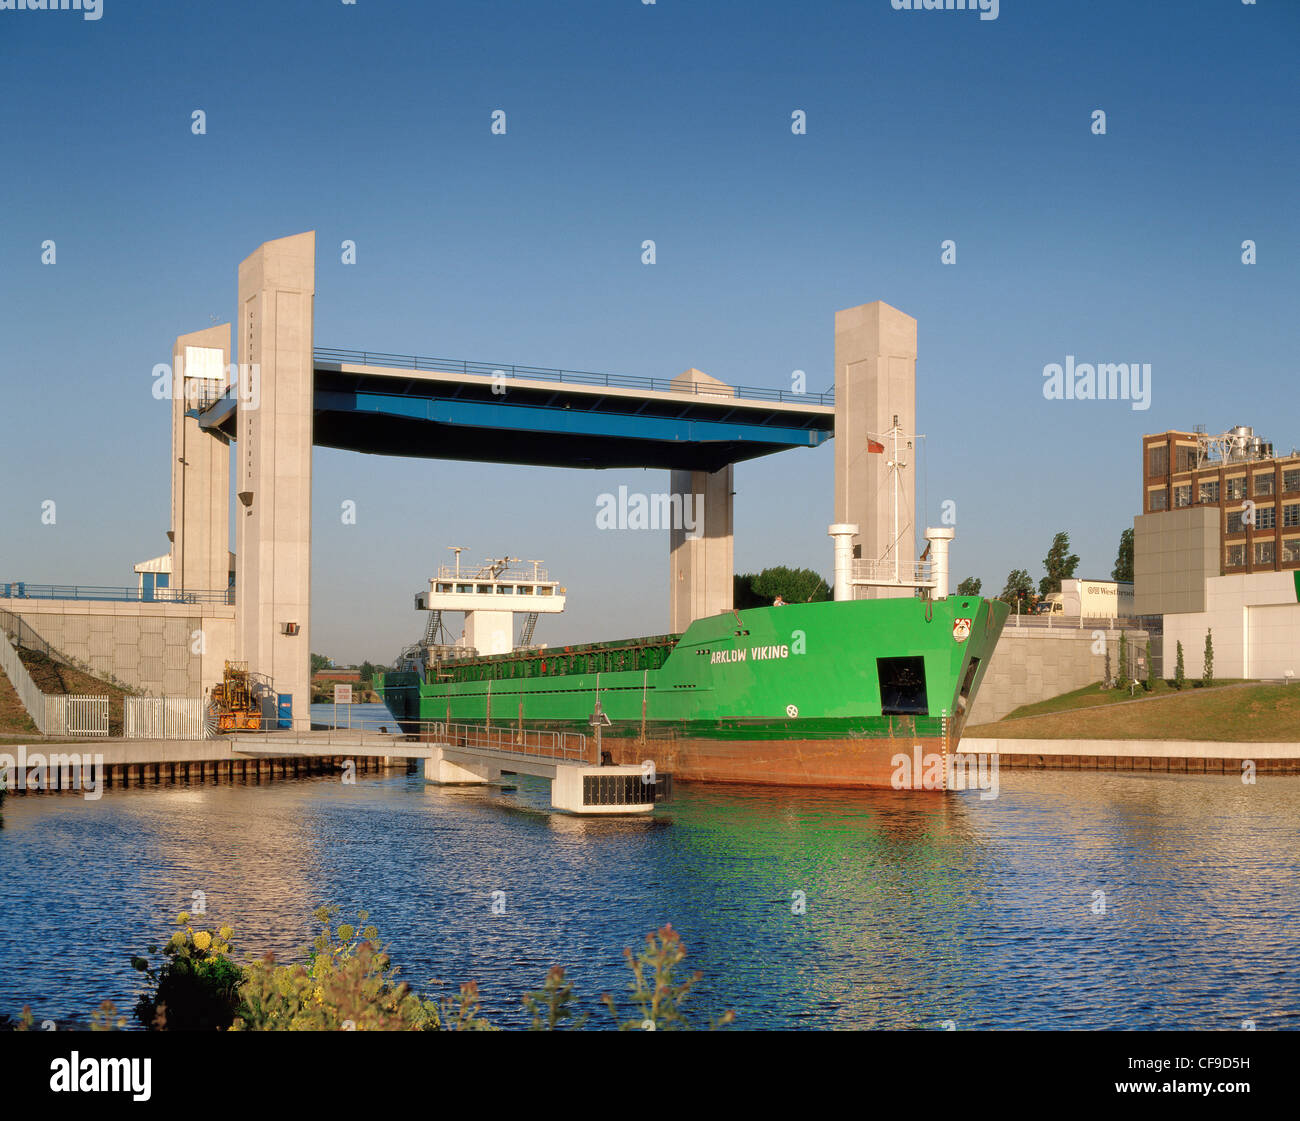 Manchester ship canal and Centenary Bridge raised for the passage of 'Arklow Viking' between Trafford Park - Stock Image